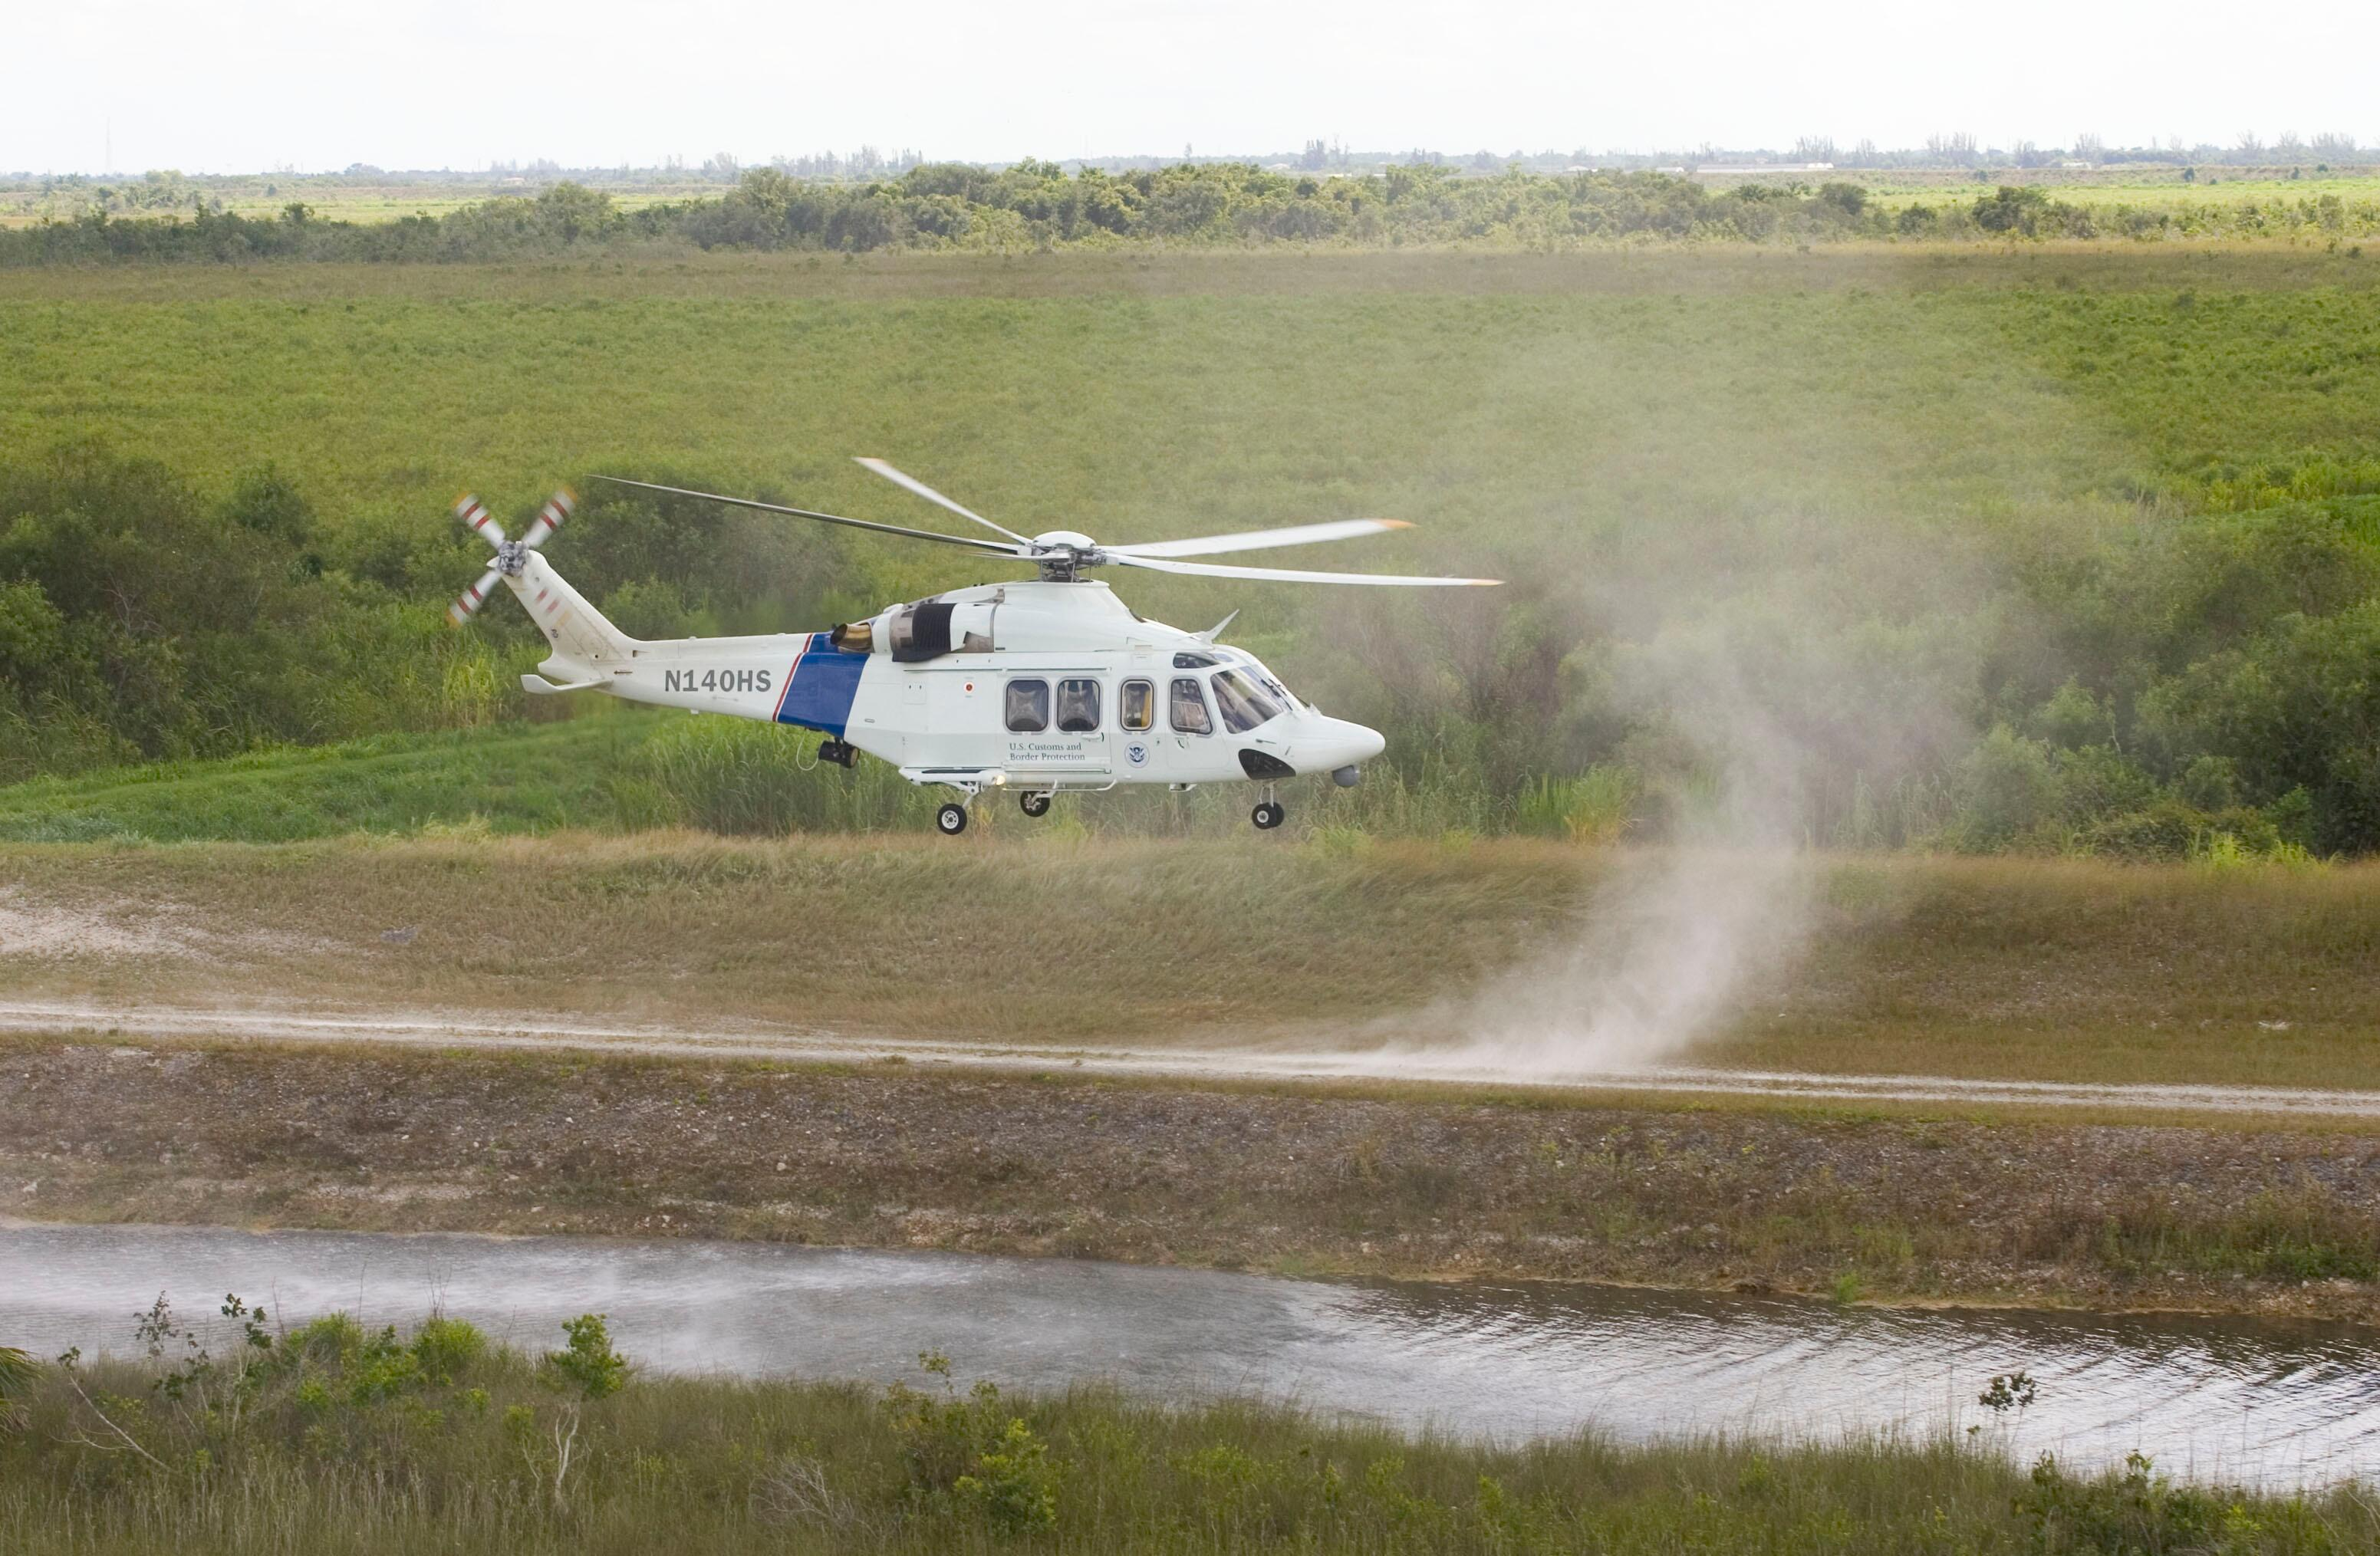 A CBP AW-139 helicopter lands in a remote area.